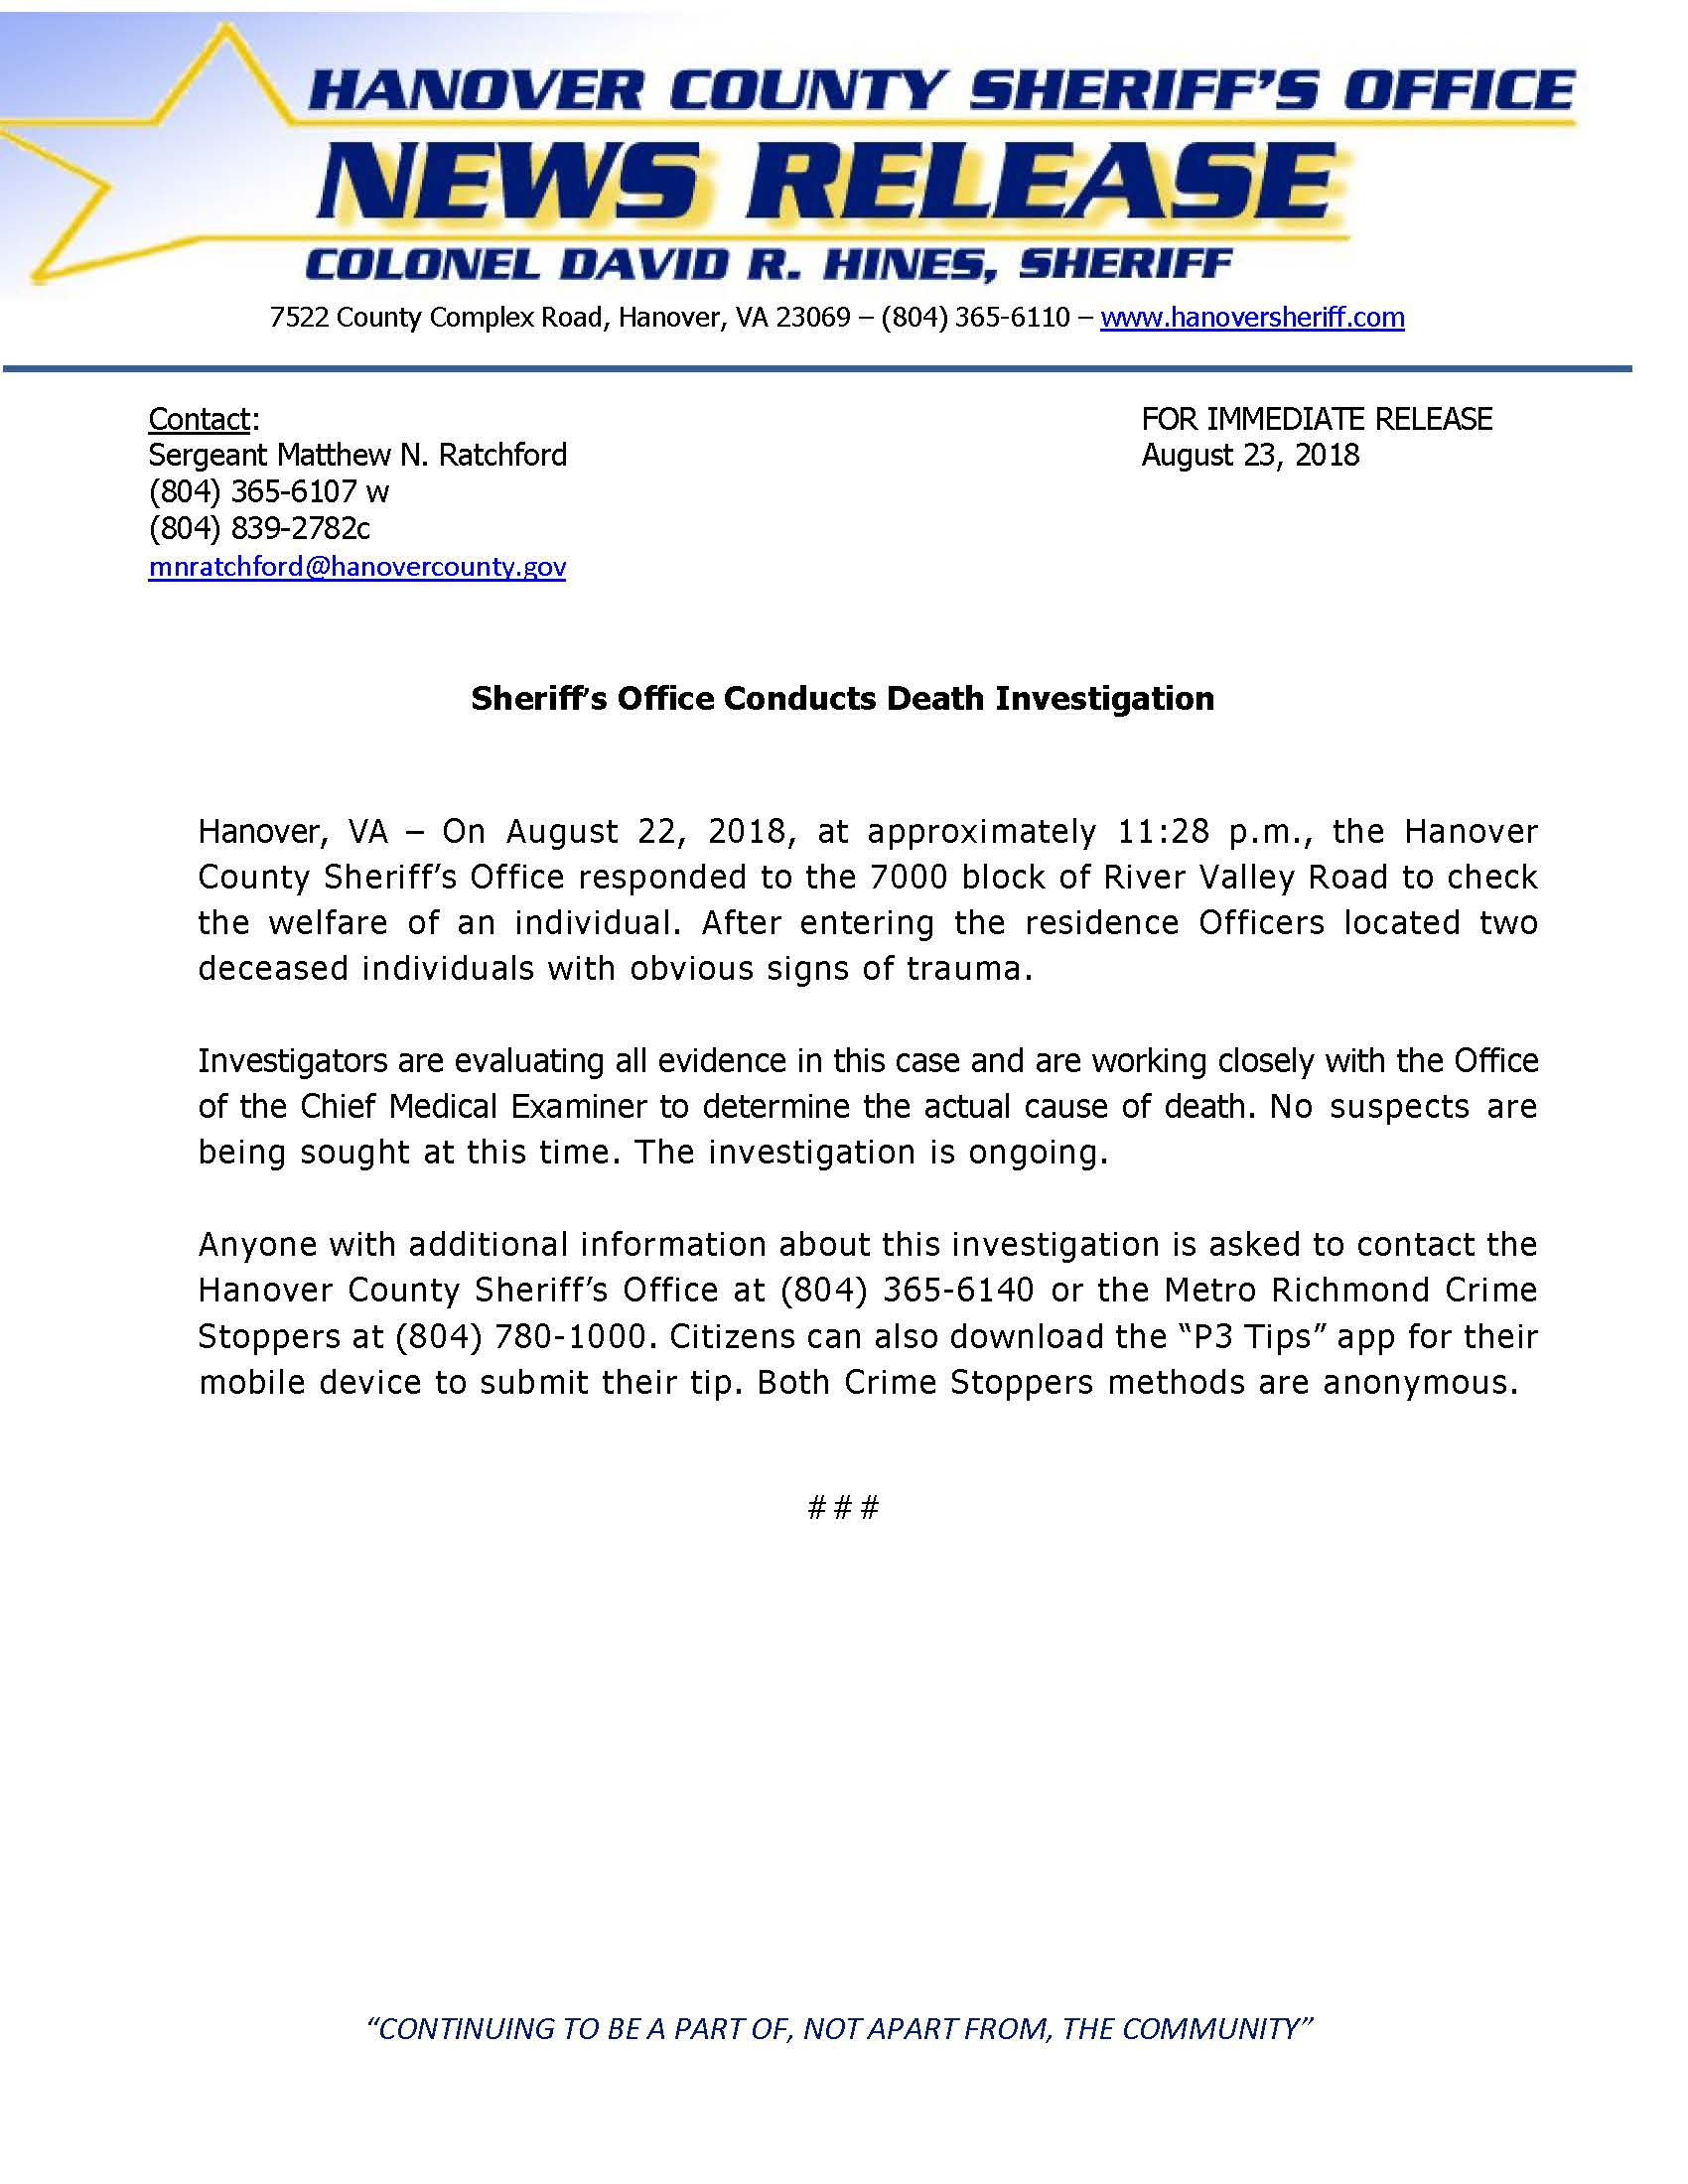 HCSO - Sheriffs Office Conducts Death Investigation- August 22 2018